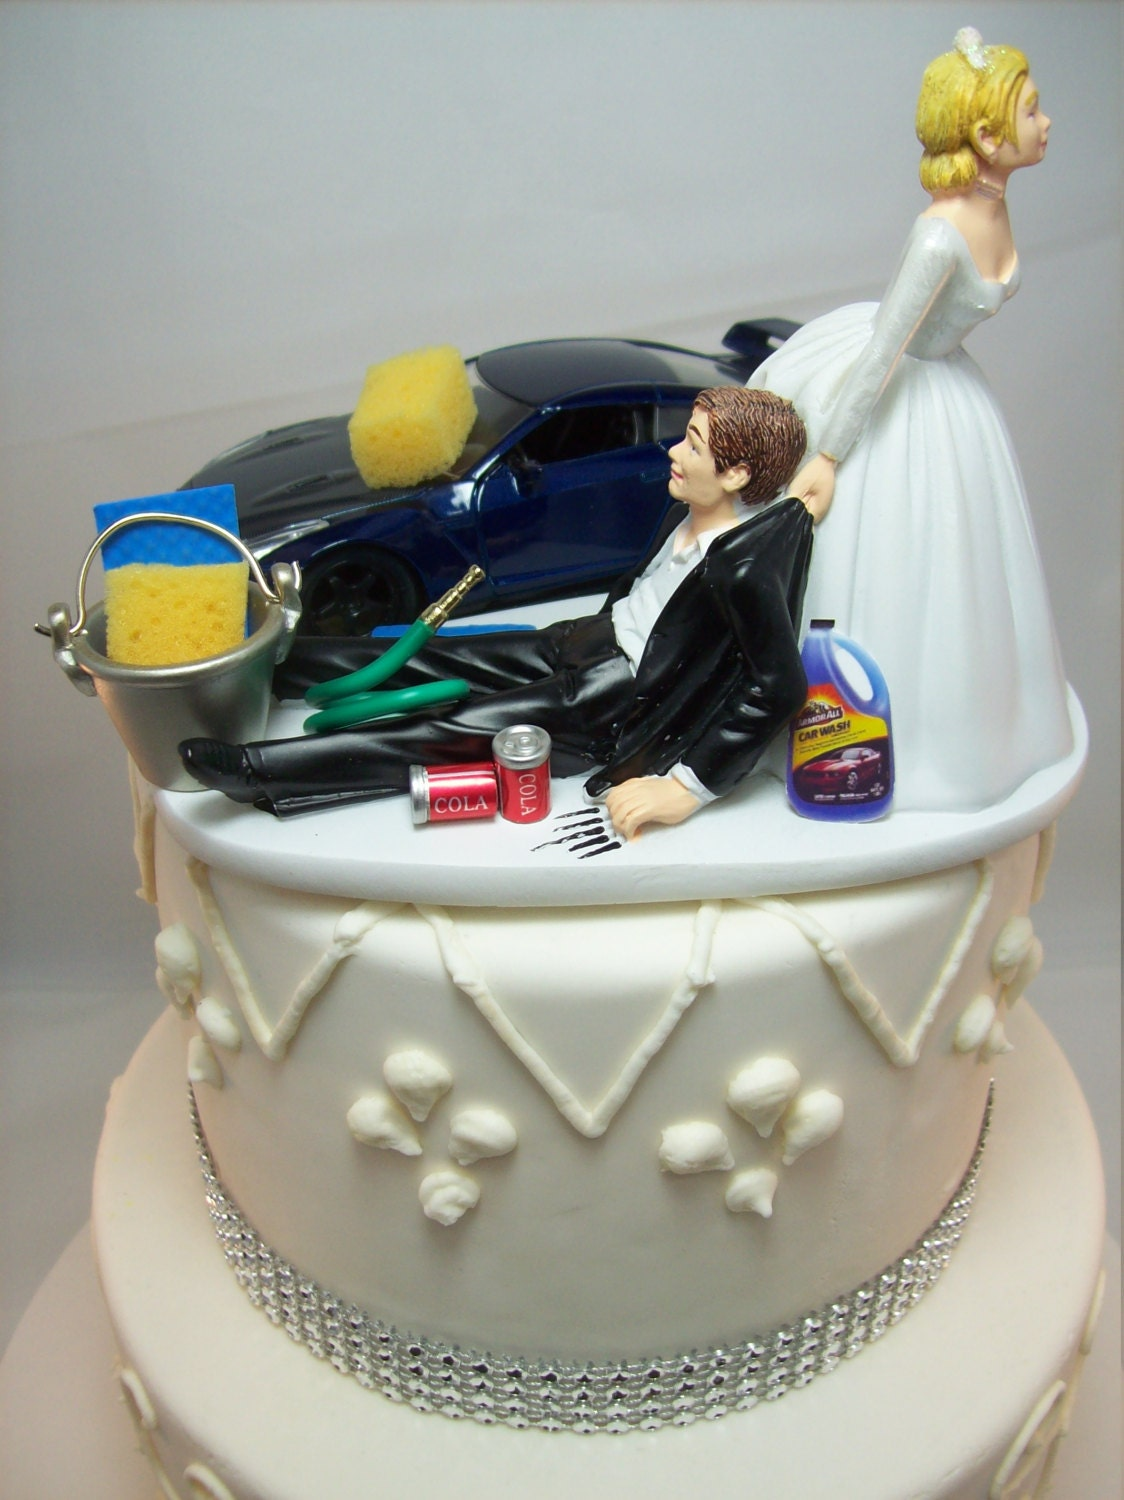 Funny Car Wash 2009 Nissan GTR Blue Auto Wedding Cake Topper